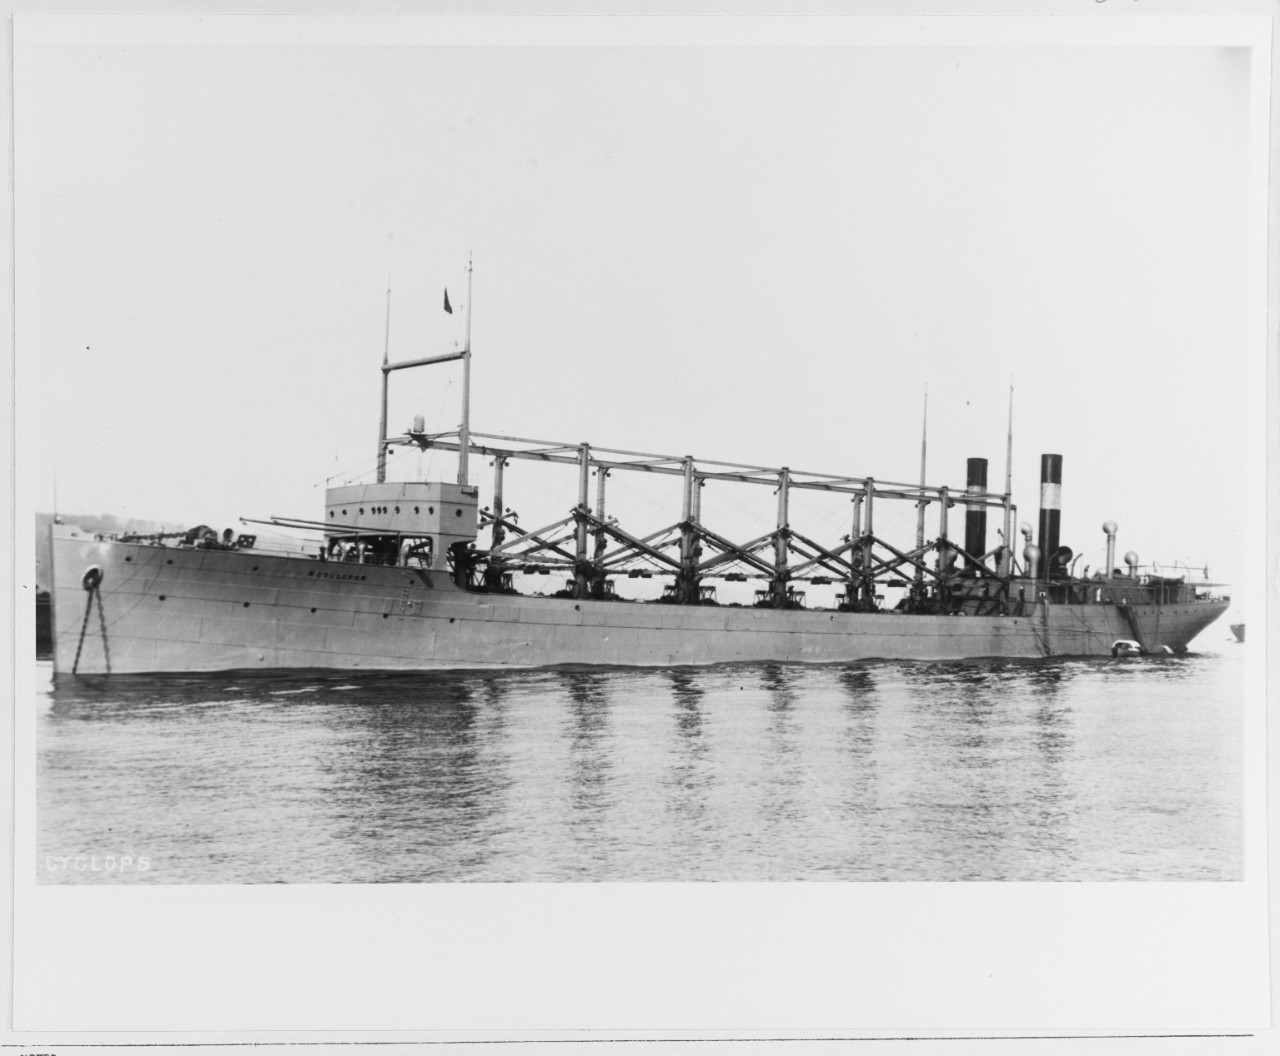 Black and White photograph of a ship on the water